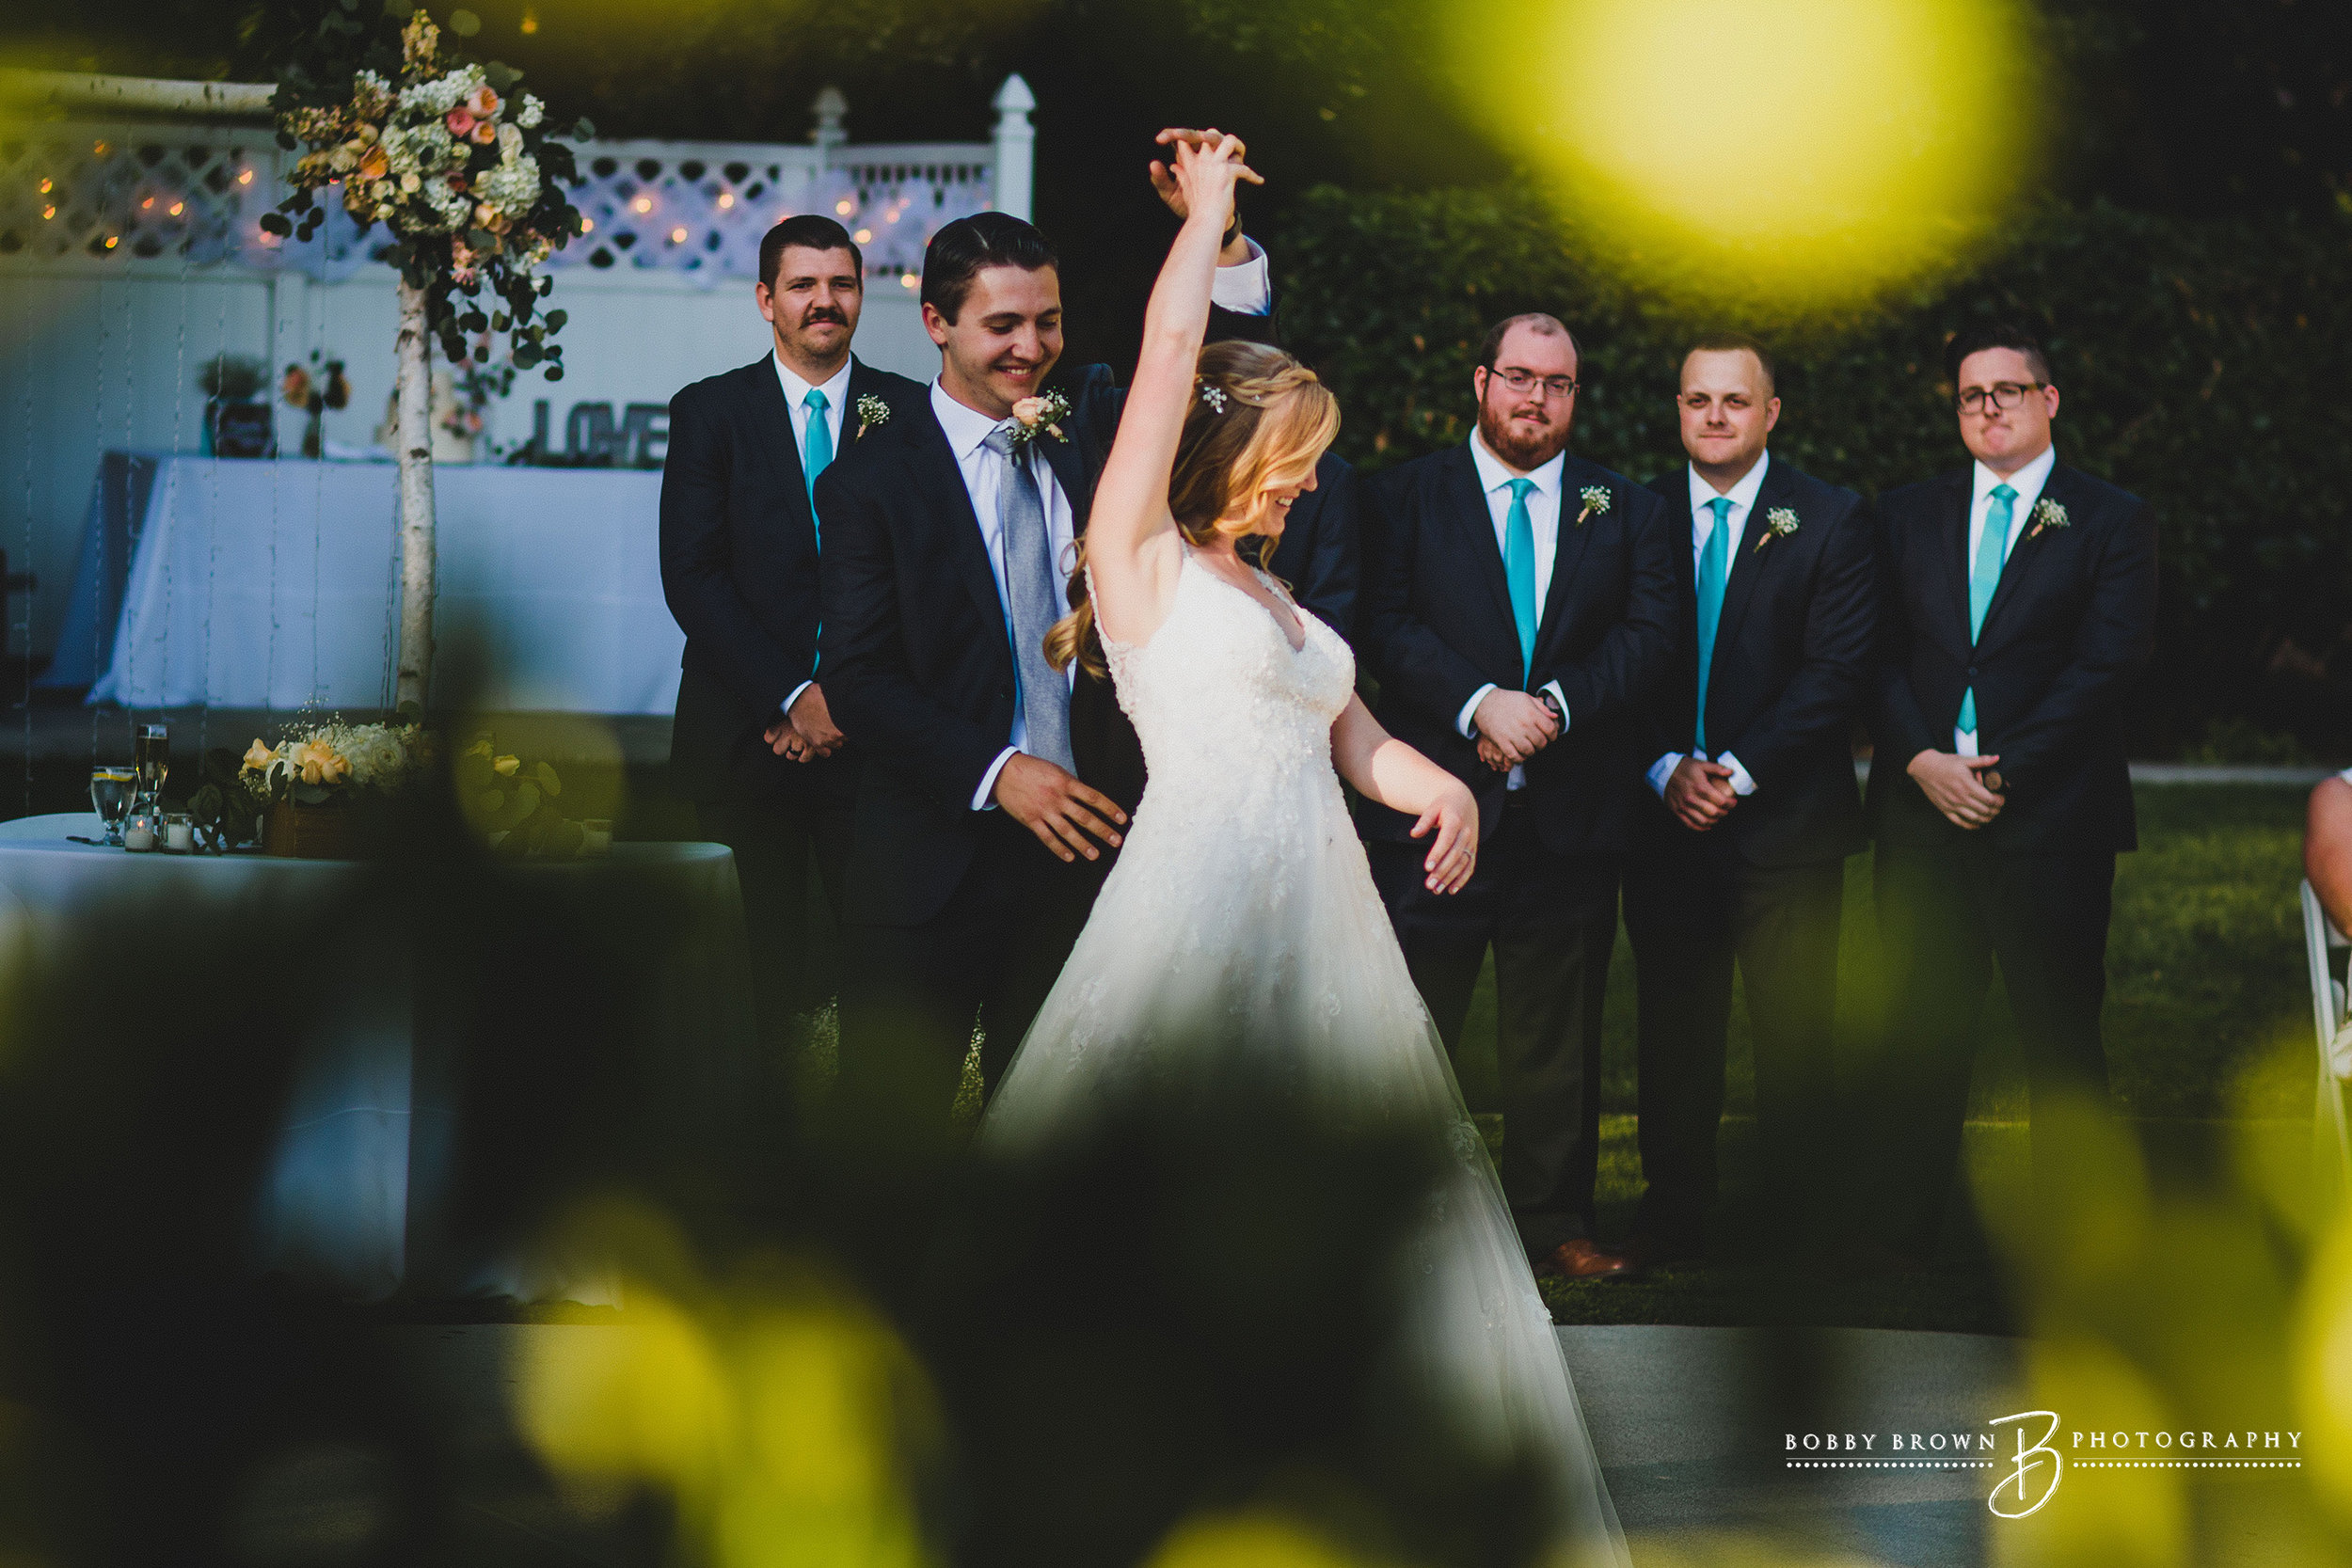 hugginswedding-745.jpg